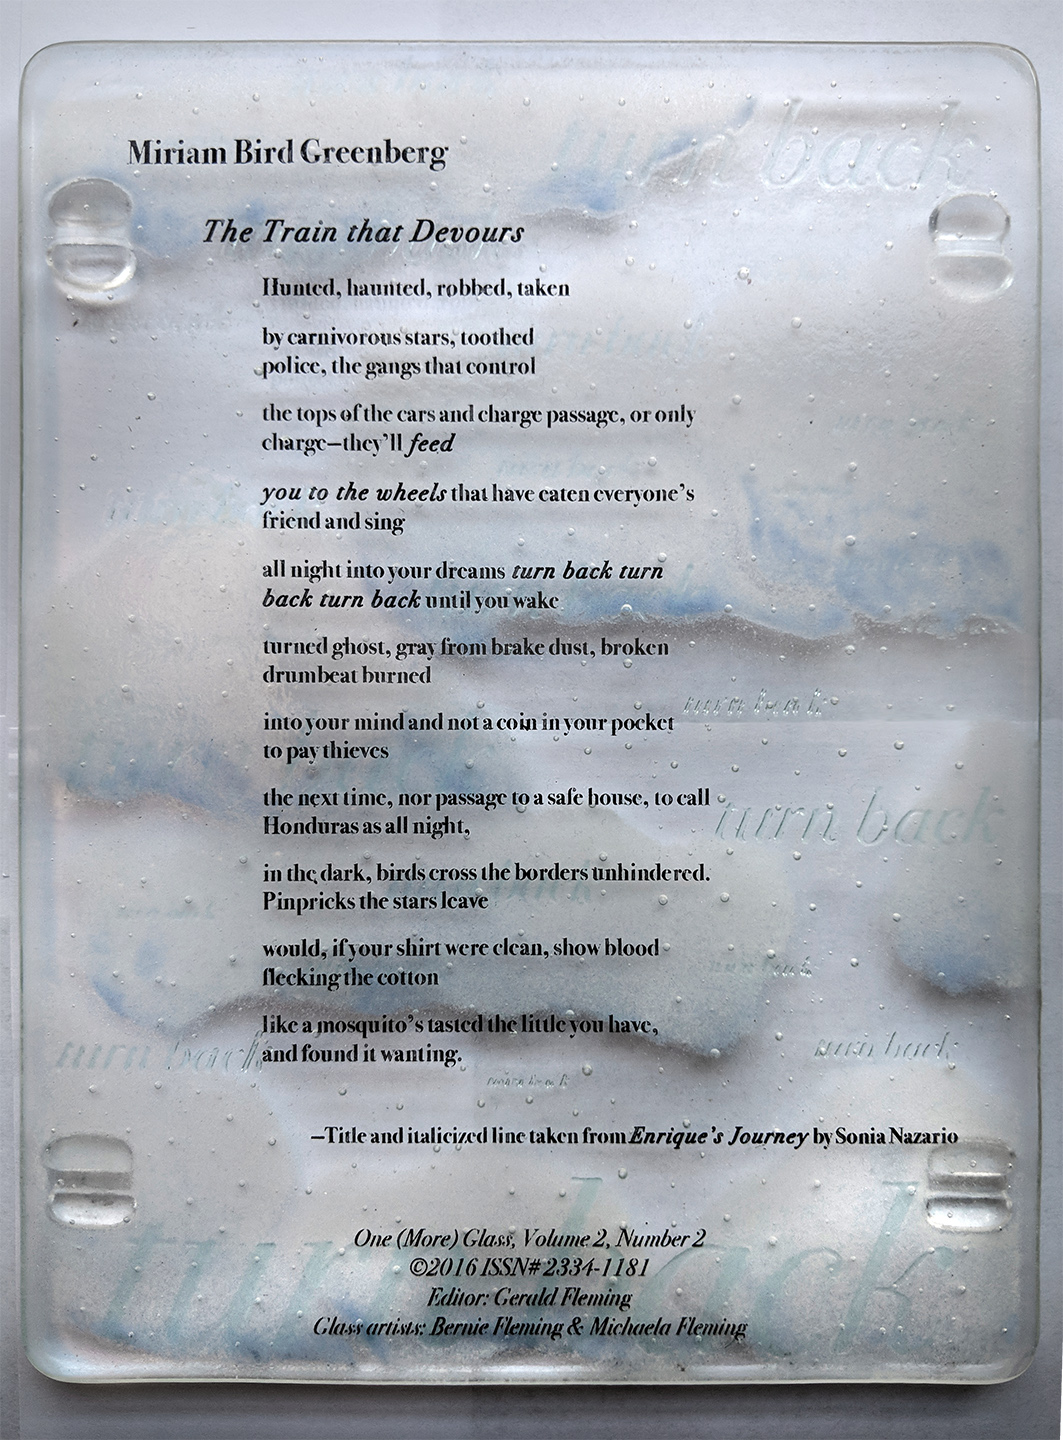 """The Train That Devours"": Limited Edition Broadside   YEAR: 2016 PUBLISHER: One (More) Glass  DROP ME A NOTE if you're interested in purchasing this one & I'll fill you in on the details."